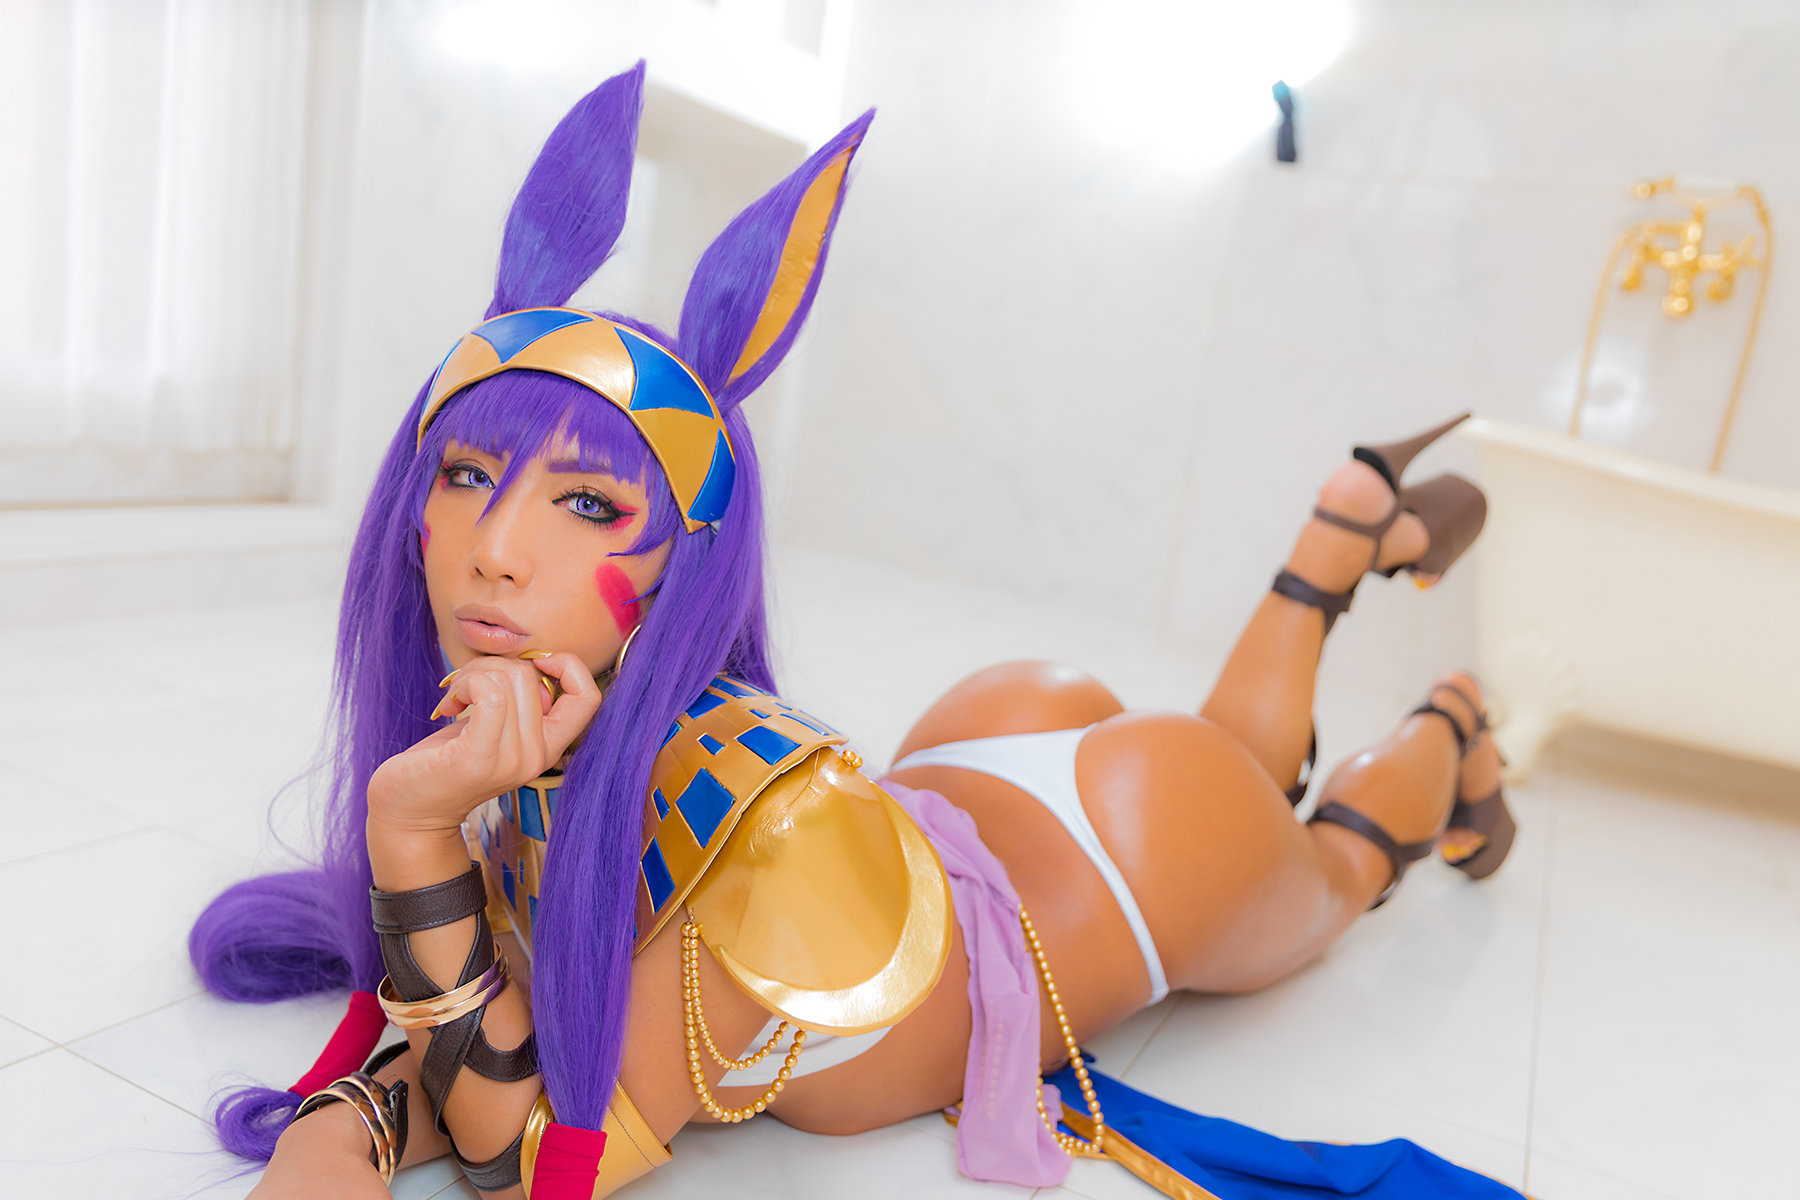 People 1800x1200 Japanese women Japanese women Asian gravure Non nonsummerjack women indoors cosplay Fate Series Fate/Grand Order ass purple hair makeup thong